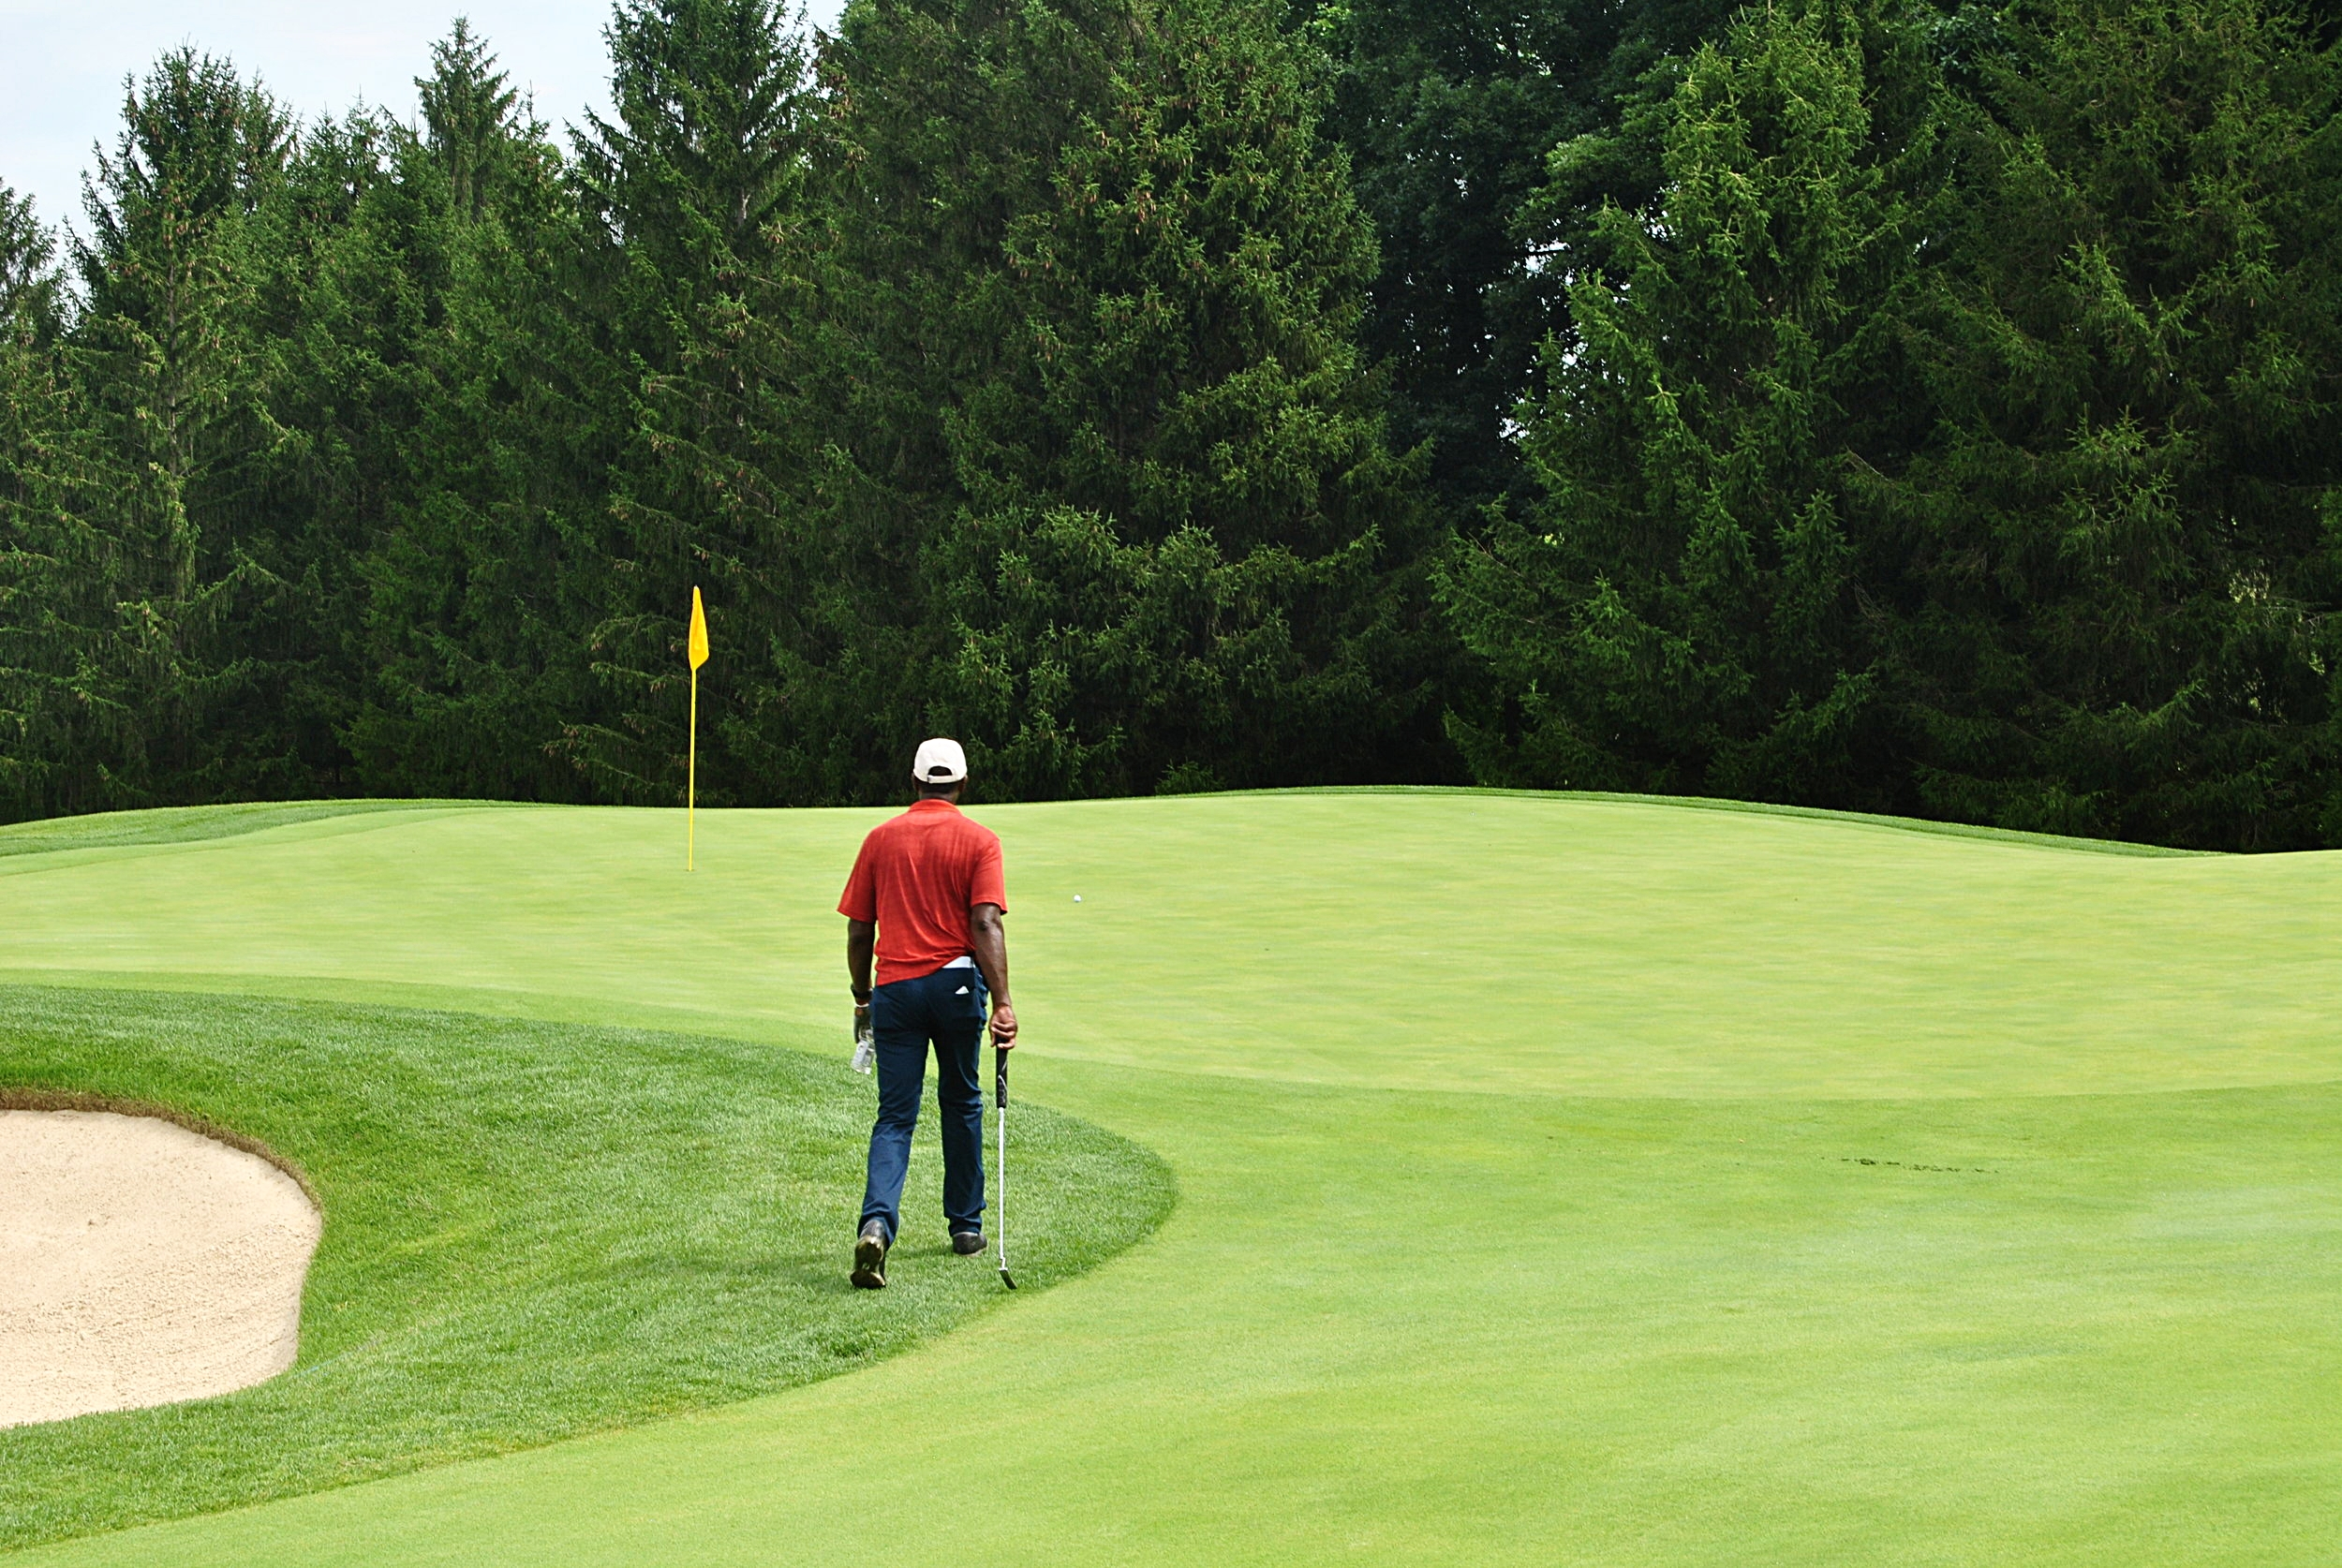 The ball rolled to the right of the flag after landing on the green and is just off my right shoulder.